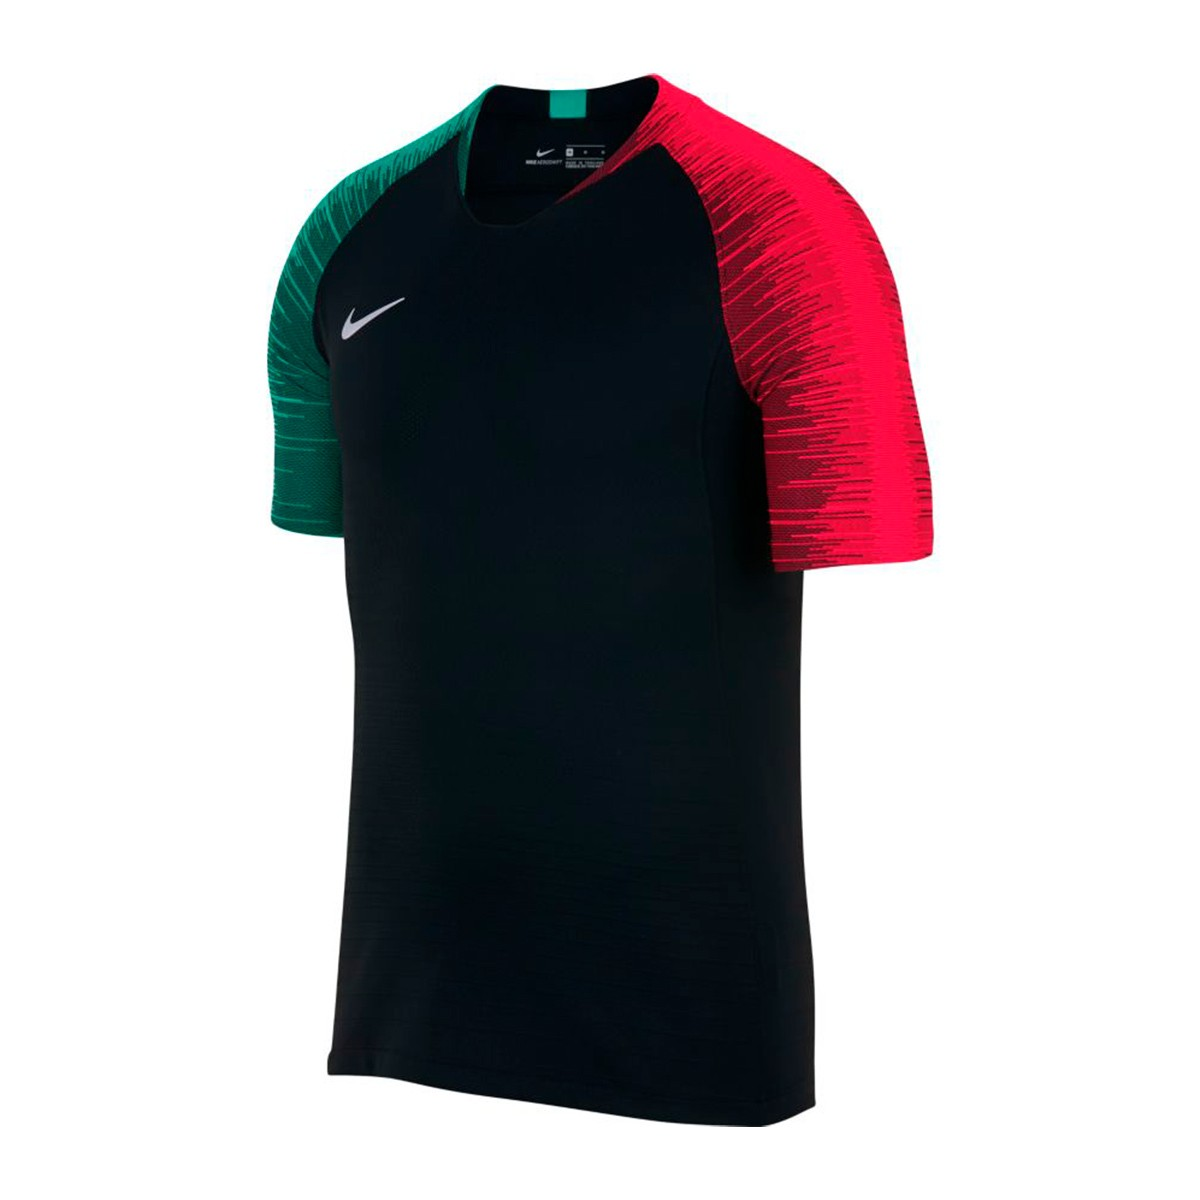 Camiseta Vaporknit Strike Black-Siren red-Kinetic green-White